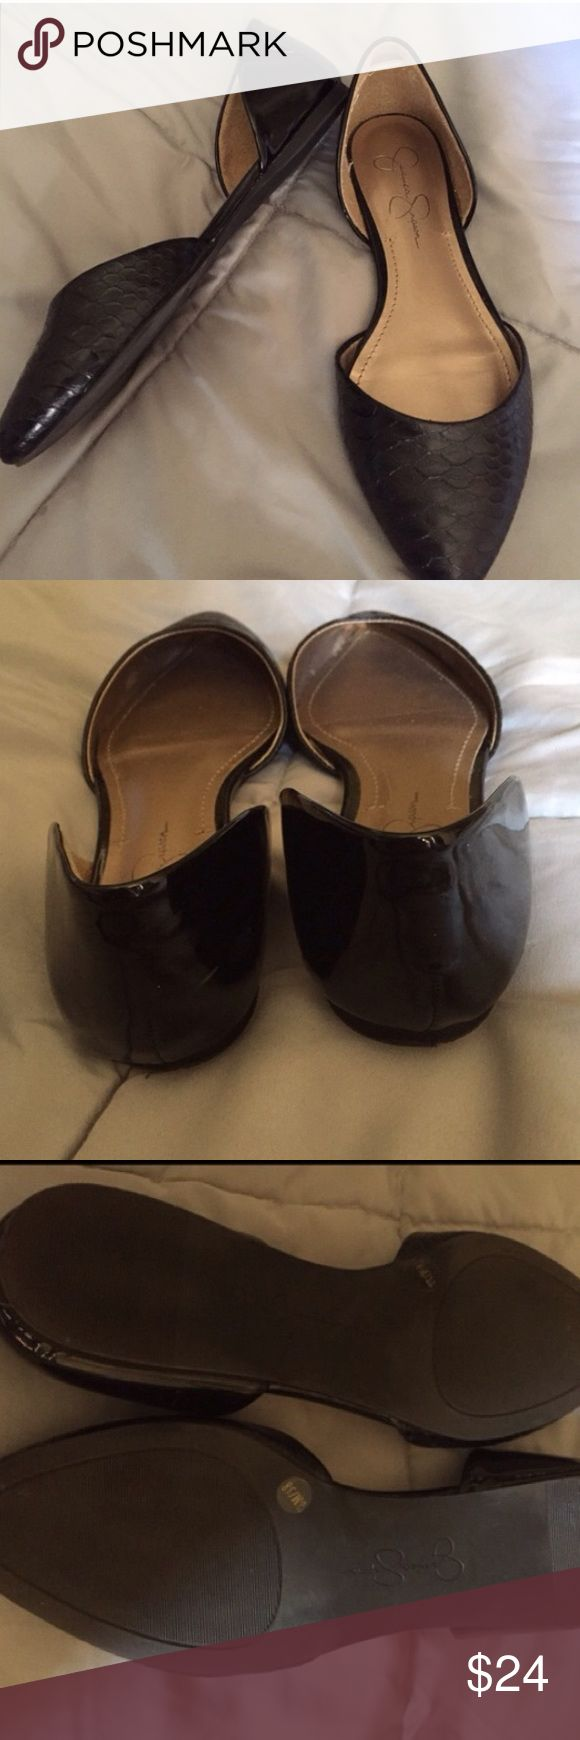 Jessica Simpson flats Worn once.  Great condition as pictured. Jessica Simpson Shoes Flats & Loafers